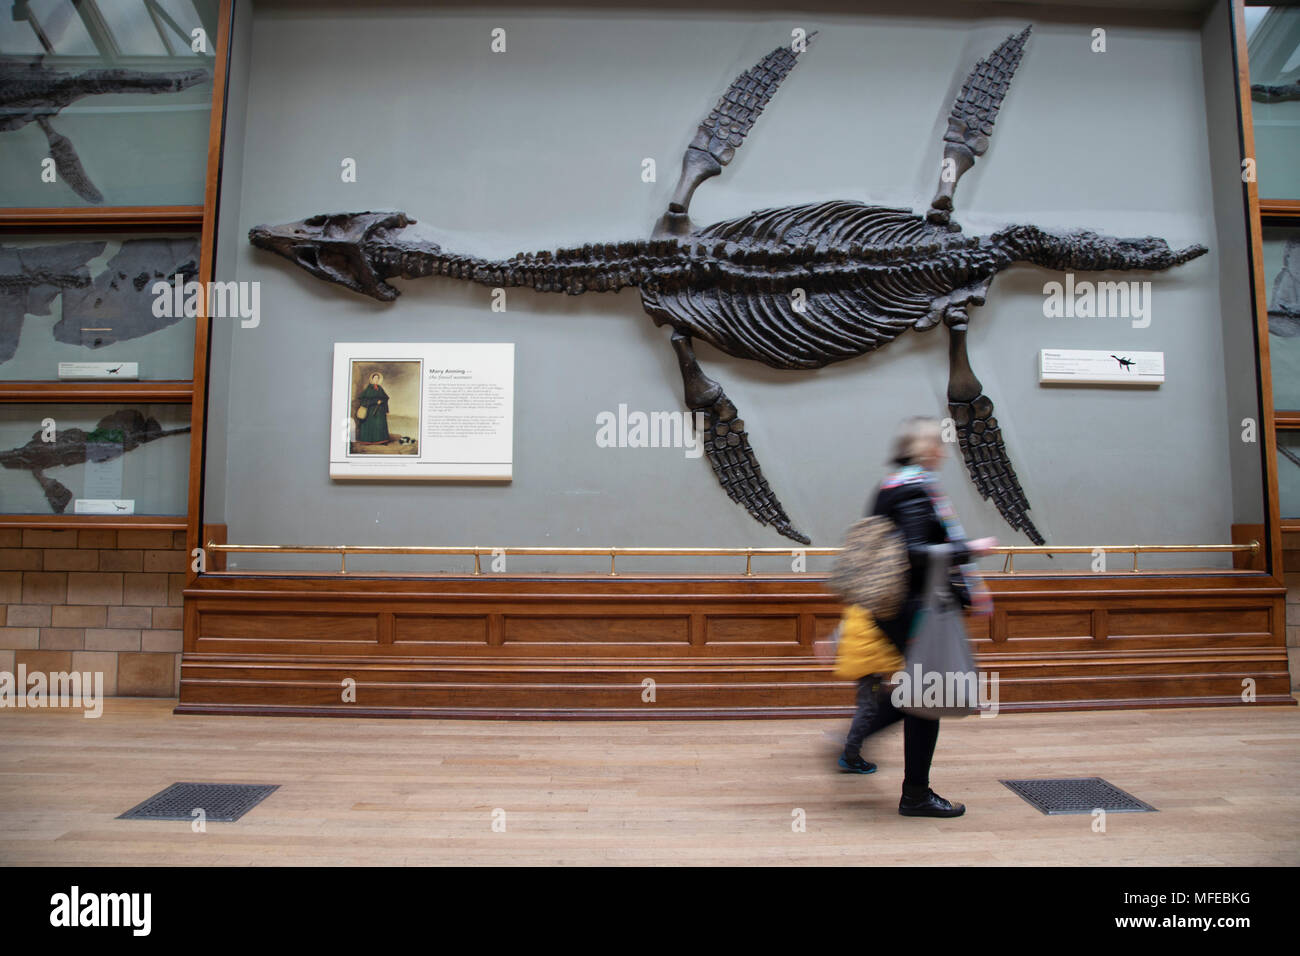 Pliosaur fossil at the Natural History Museum in London, England, United Kingdom. Pliosaurus, meaning more lizard is an extinct genus of thalassophonean pliosaurid. The museum exhibits a vast range of specimens from various segments of natural history. The museum is home to life and earth science specimens comprising some 80 million items within five main collections: botany, entomology, mineralogy, paleontology and zoology. The museum is a centre of research specialising in taxonomy, identification and conservation. - Stock Image